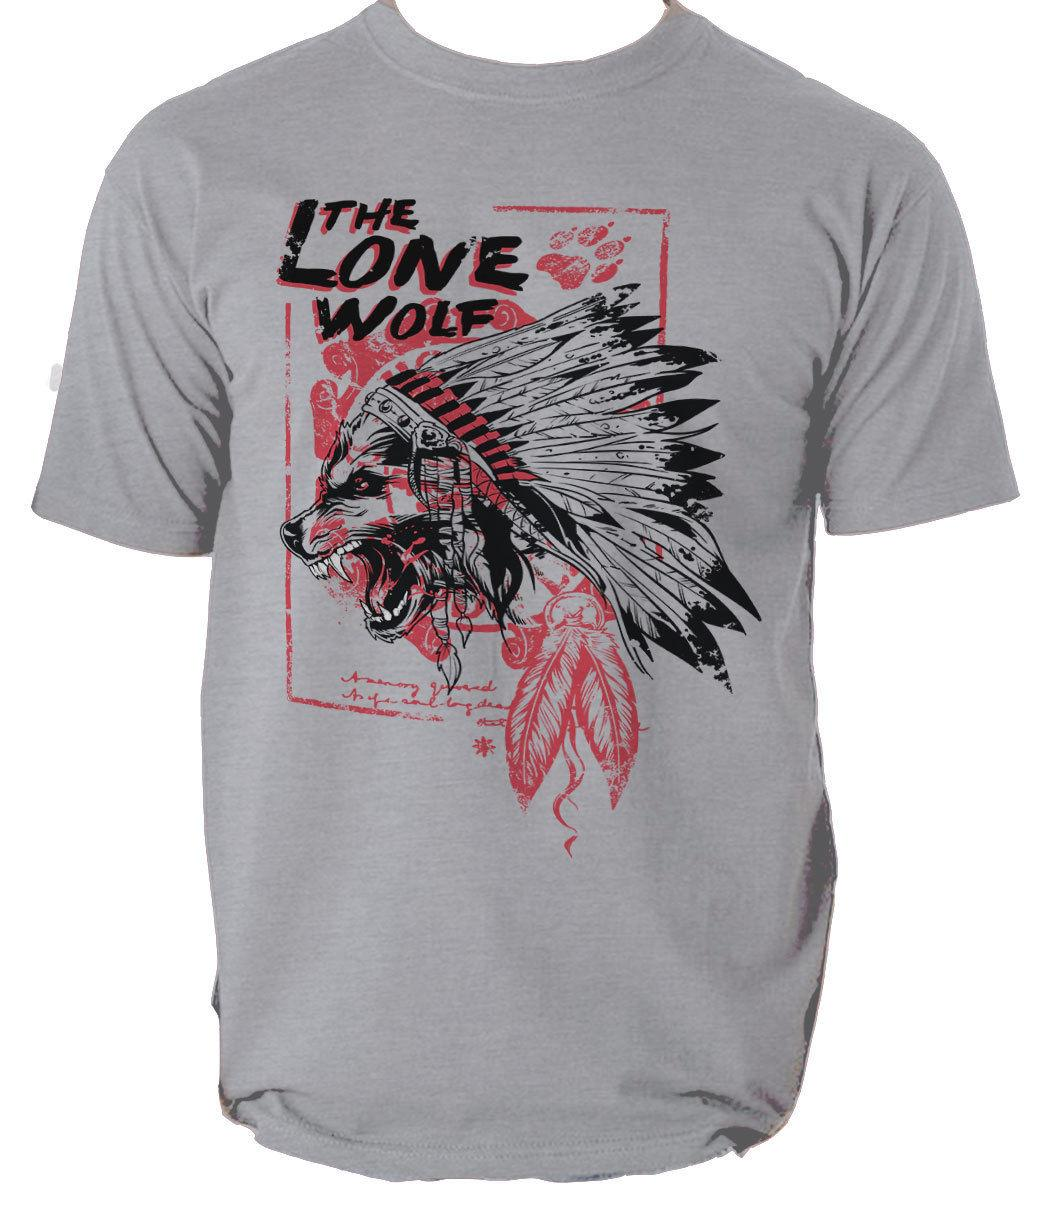 The lone wolf t shirt wolf indian vintage s-3xl Men Women Unisex Fashion tshirt Free Shipping black